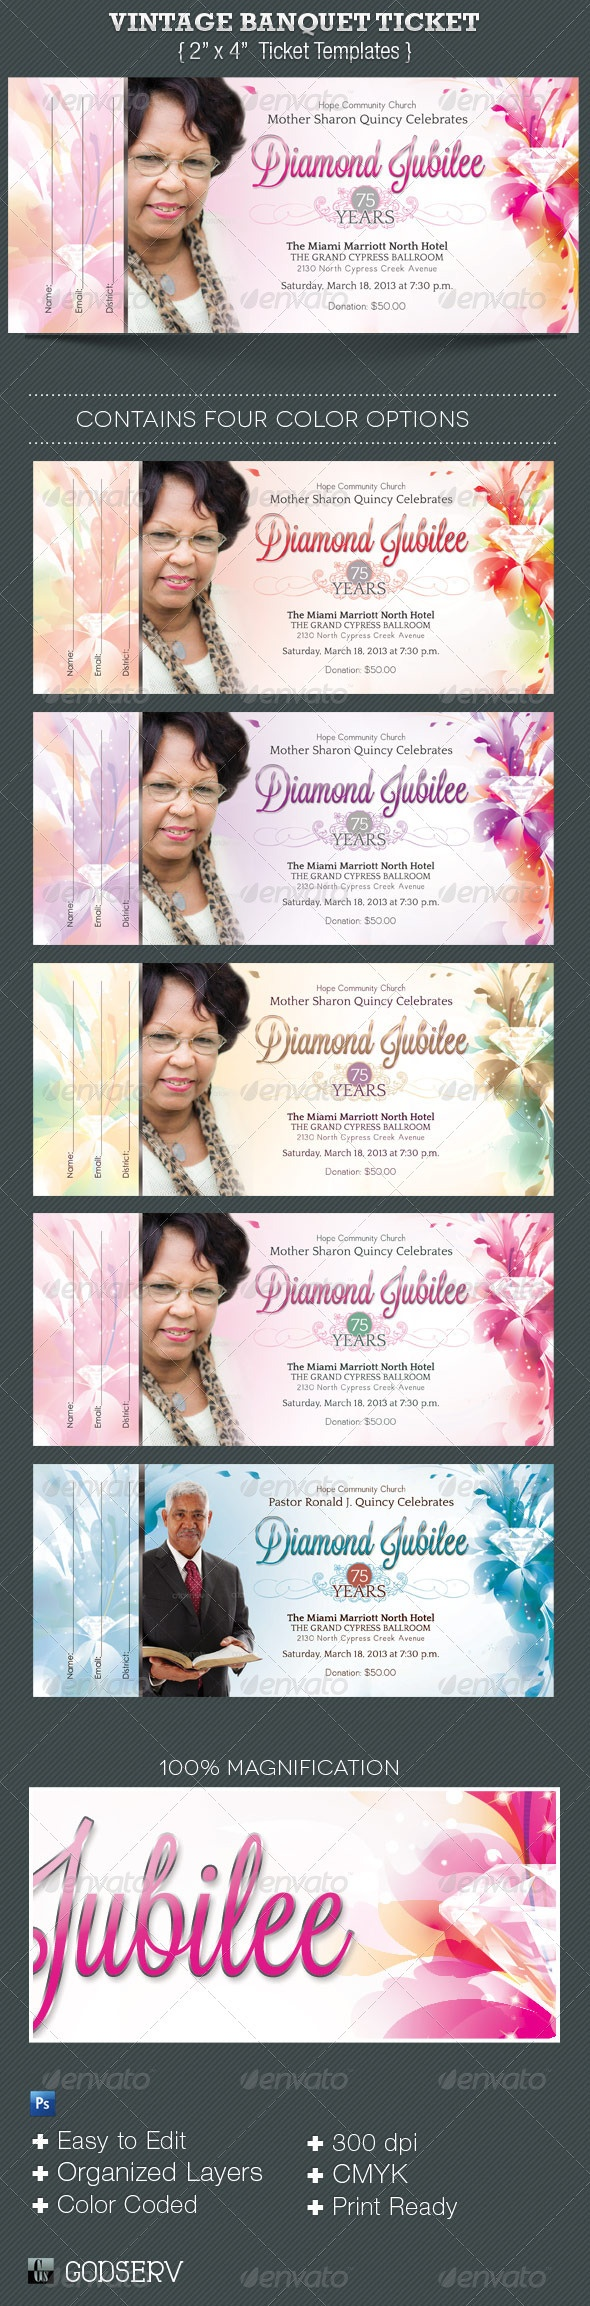 17 best images about ticket designs basketball baby diamond jubilee event ticket template